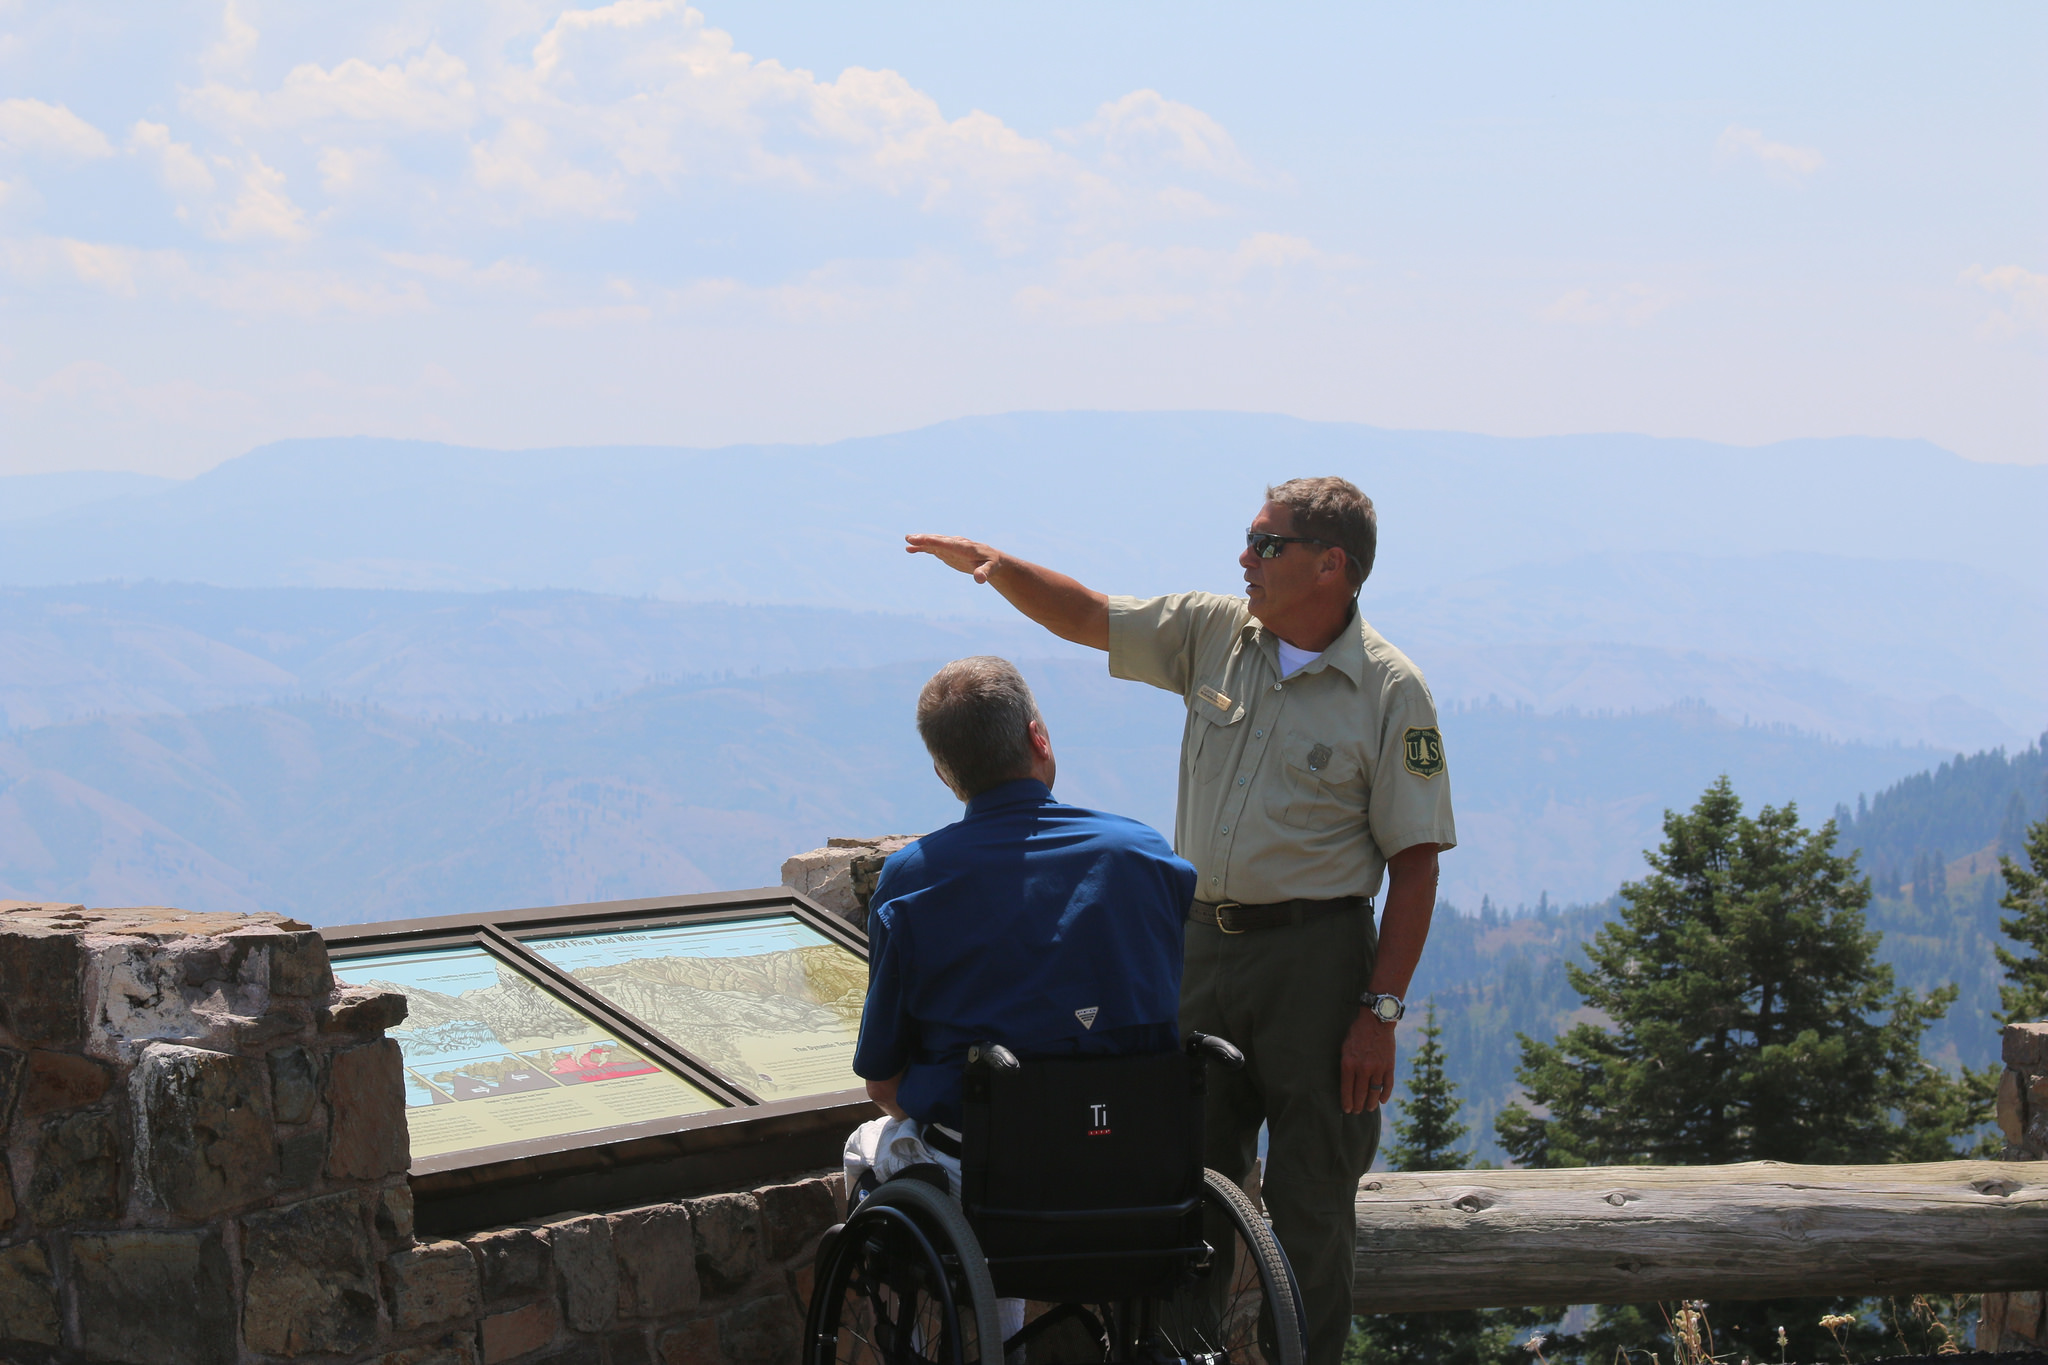 Two men at an overlook